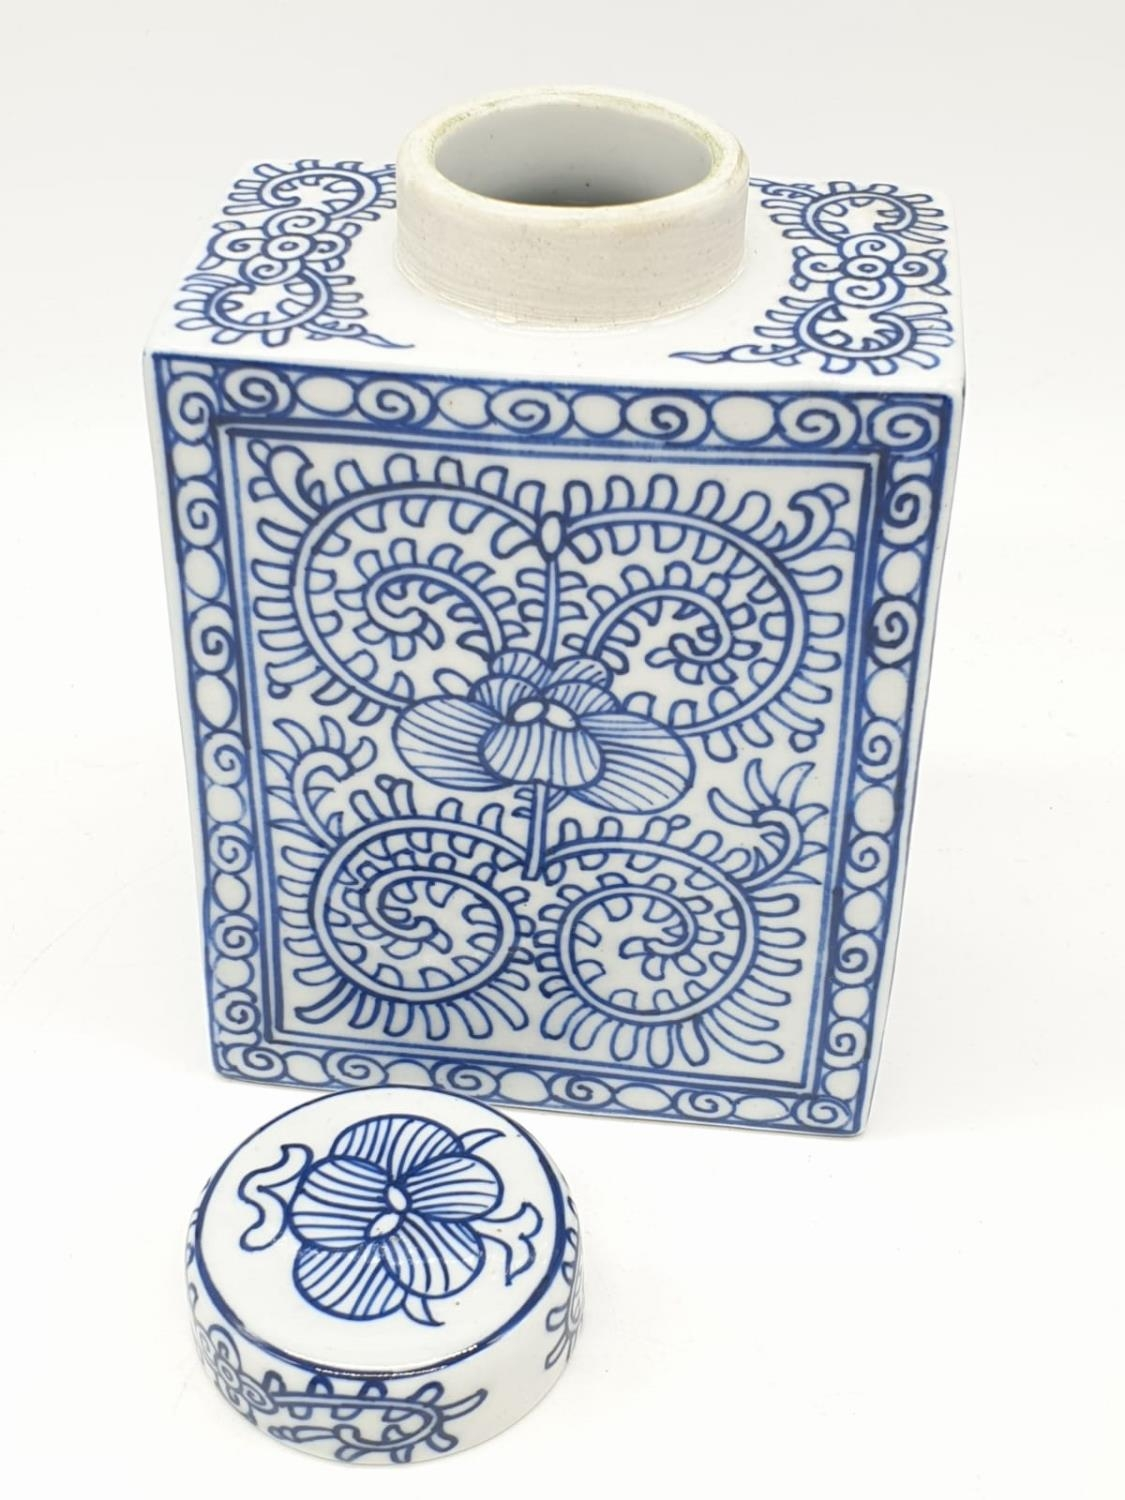 A Japanese, white and blue hand painted, rectangular, porcelain, storage jar, with lid. - Image 6 of 12